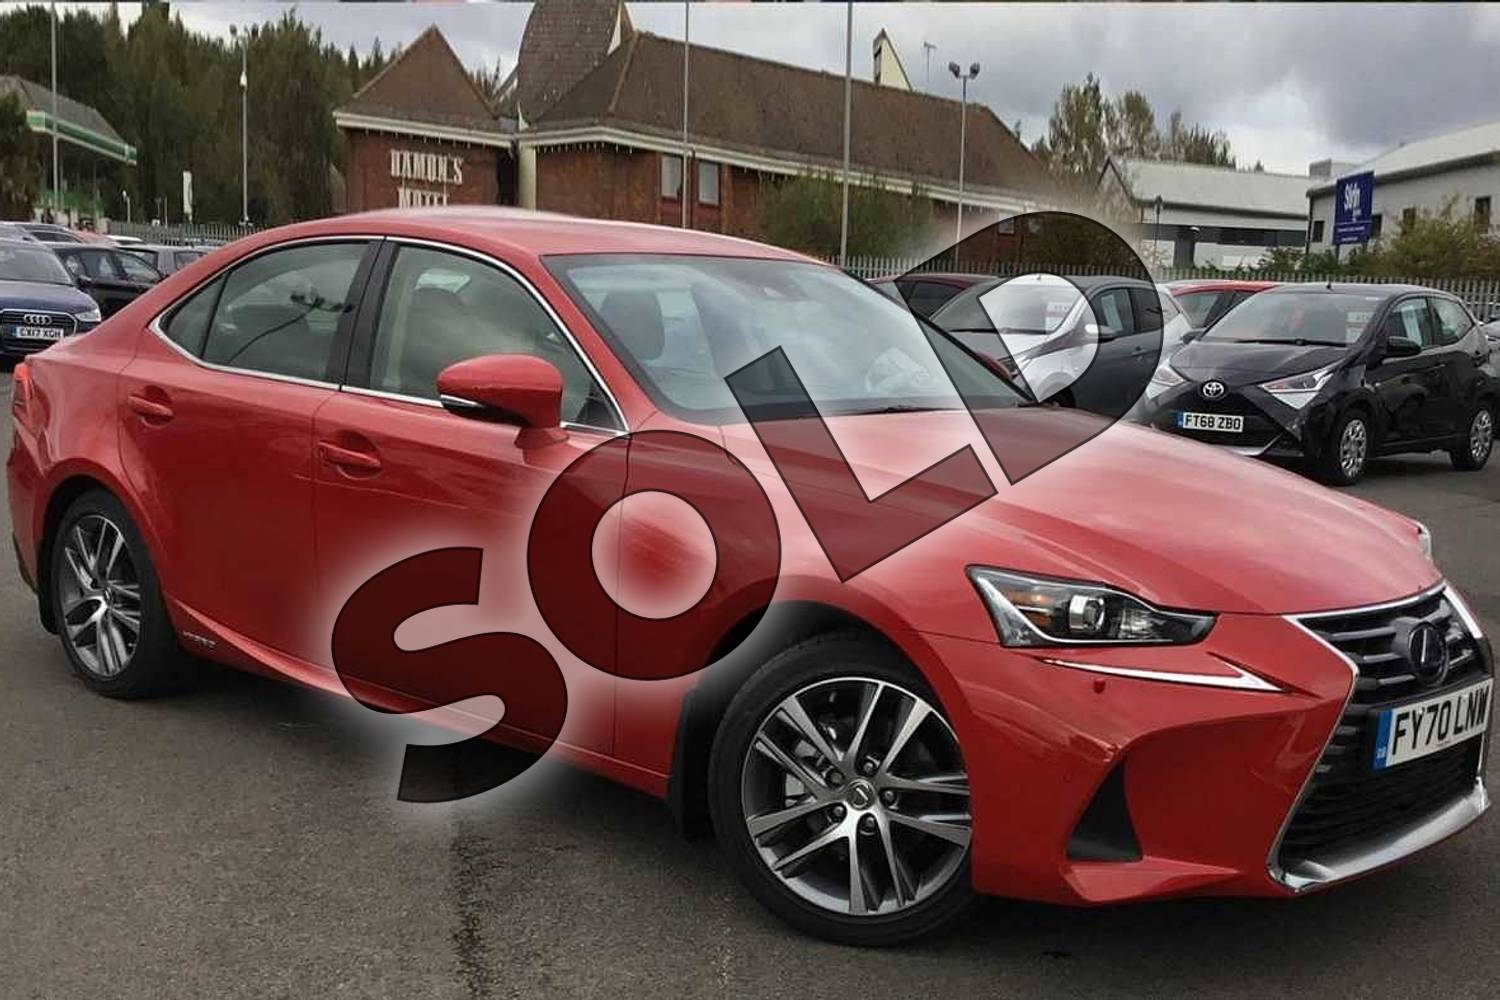 2020 Lexus IS Saloon 300h 4dr CVT Auto in Fuji Red at Lexus Lincoln